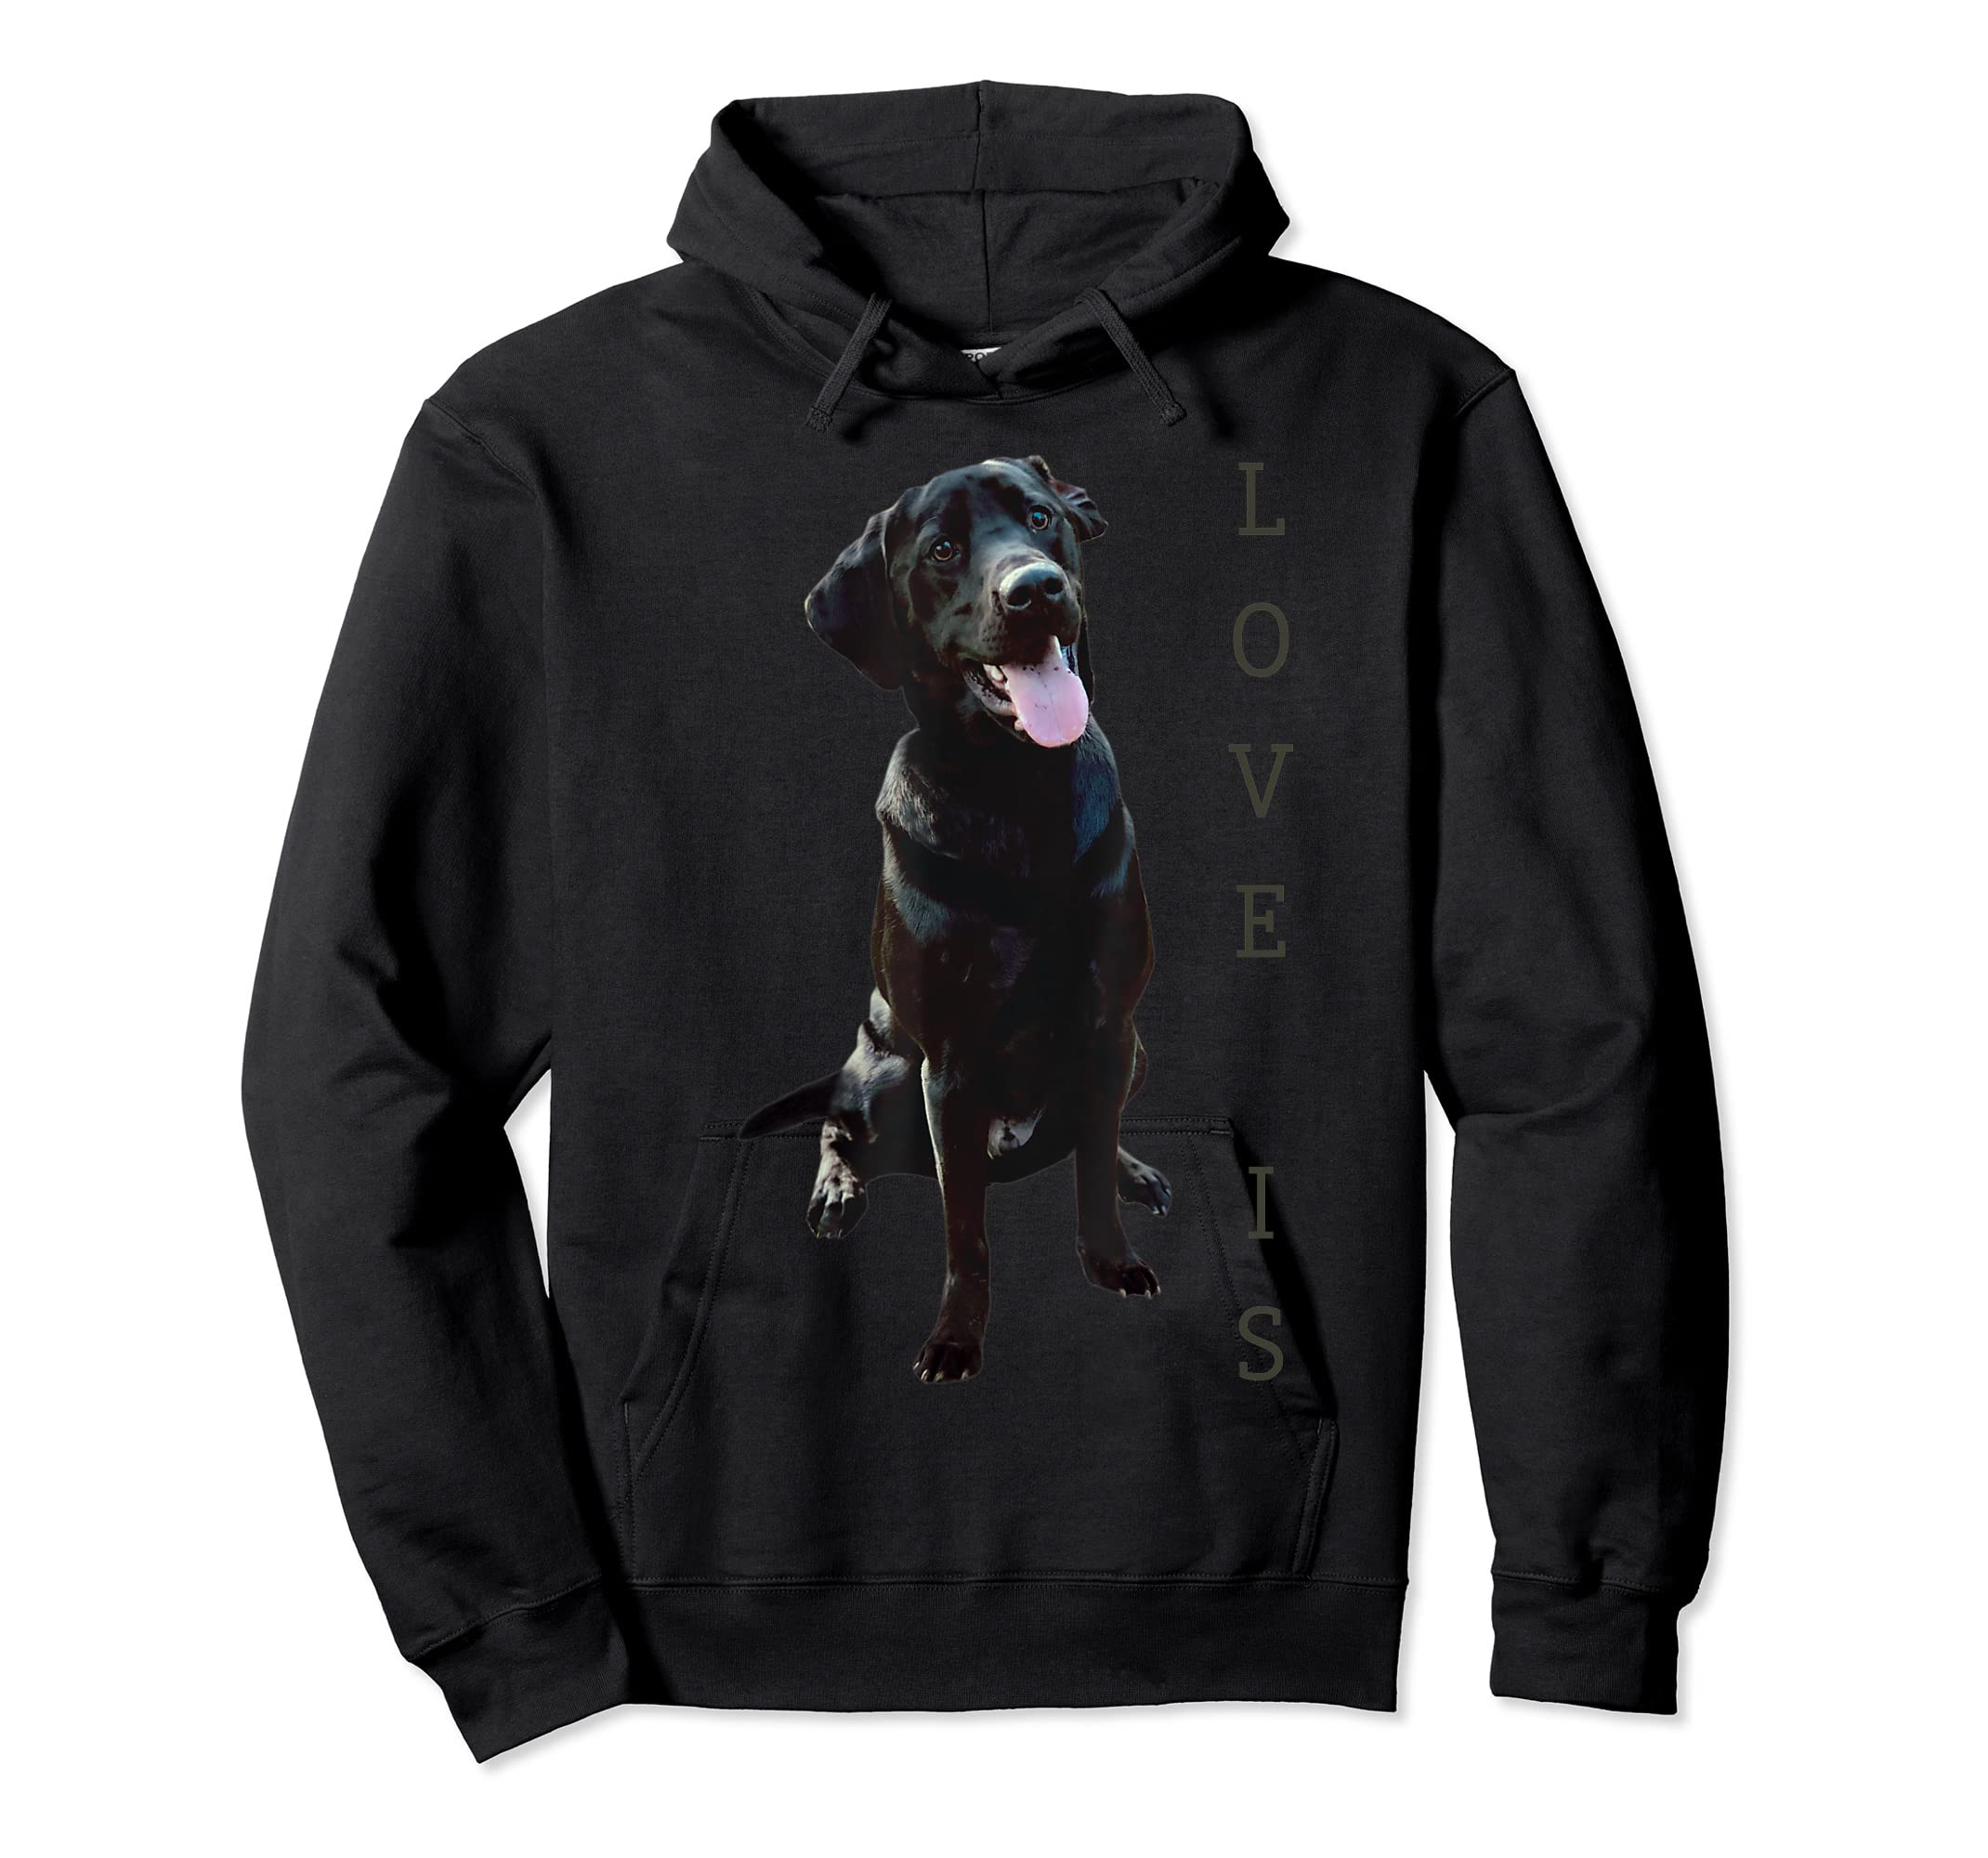 Labrador Retriever Shirt Women Men Kids Black Lab Dog Mom-Hoodie-Black